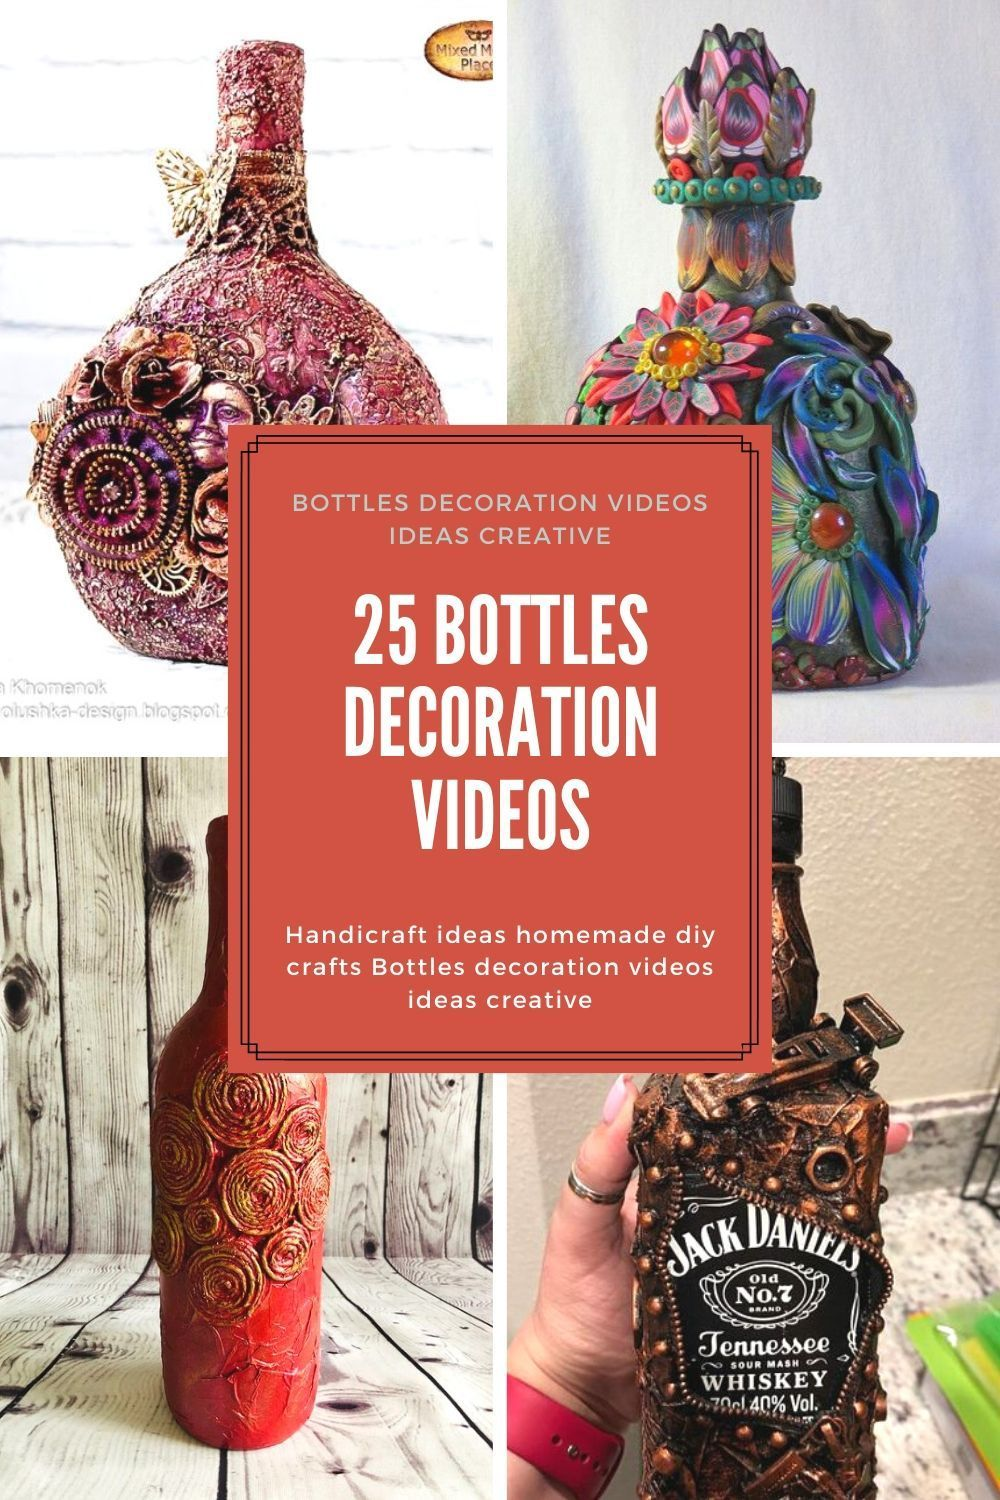 Diy Wine Bottle Crafts For A Fun Afternoon Project Homemade Vases Filled With Flowers Hang In 2020 Recycled Bottle Crafts Water Bottle Crafts Wine Bottle Diy Crafts